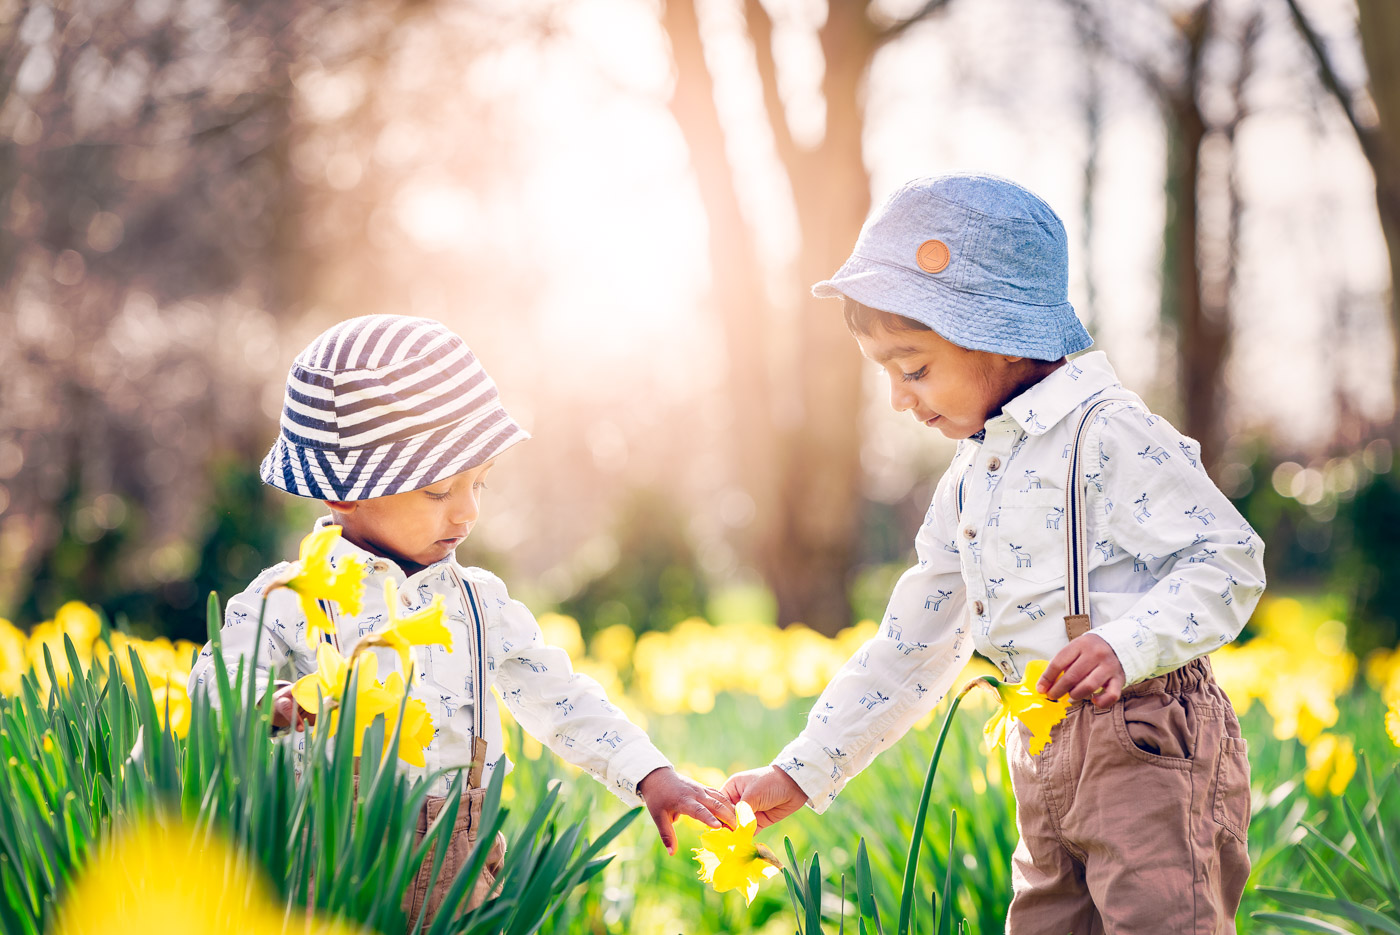 Spring family photoshoot with brothers holding hands and having matching dresses among spring flowers